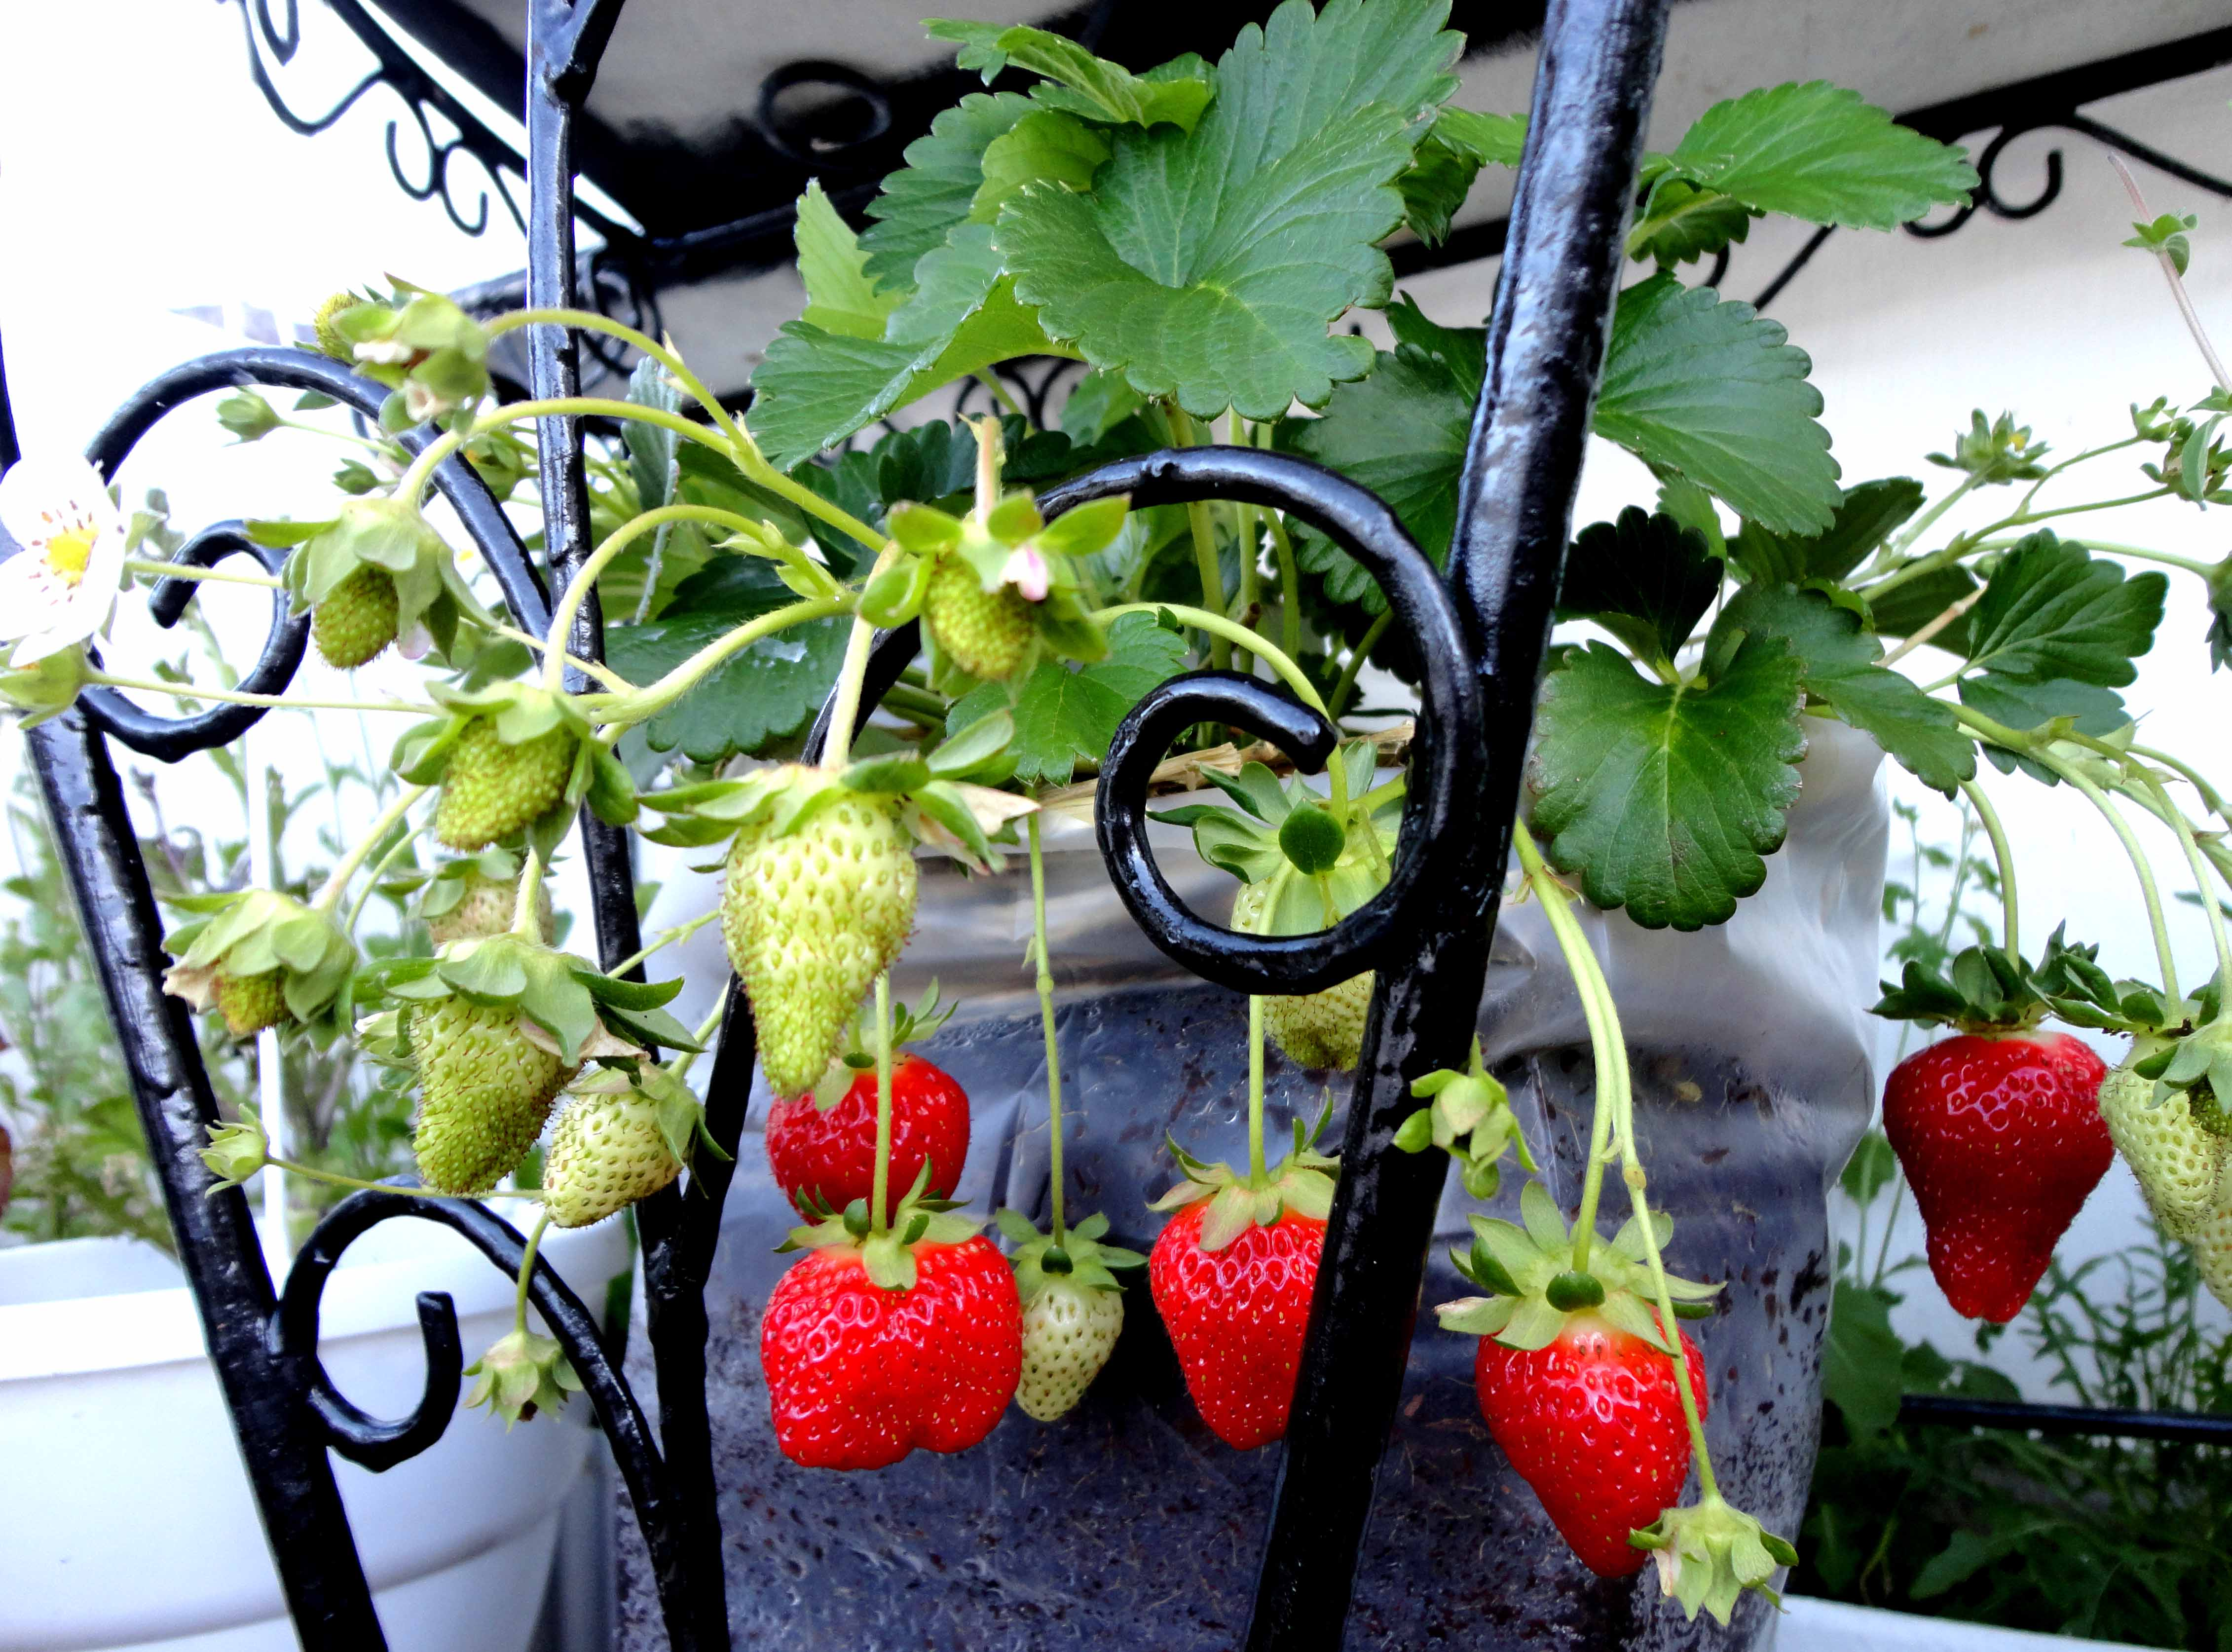 How To Fall In Love With Growing Strawberries